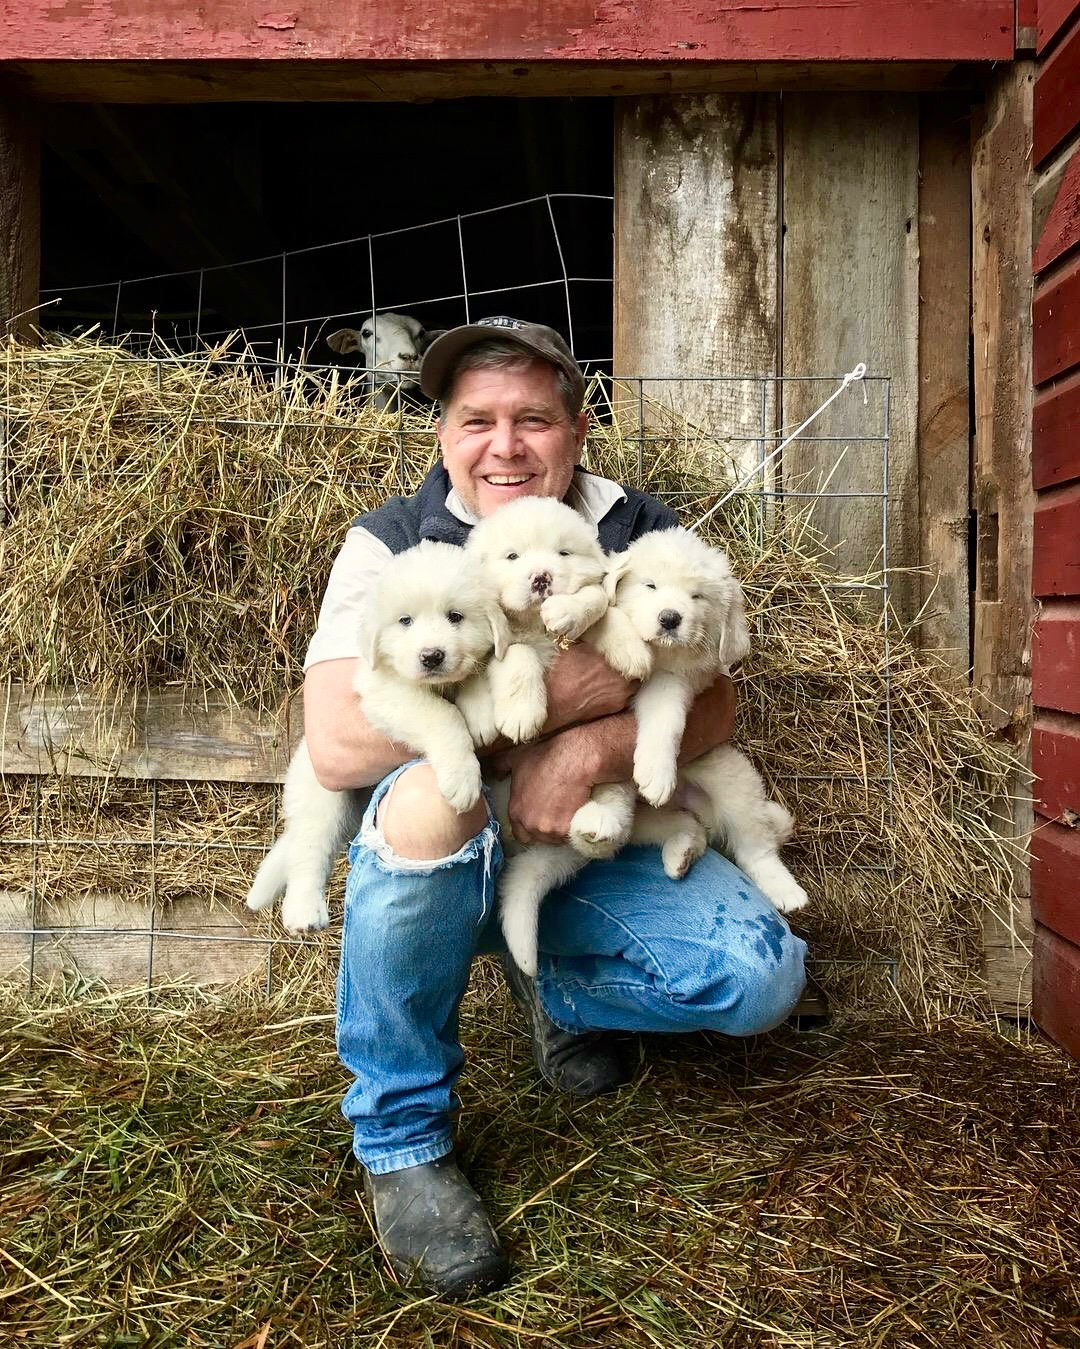 Lime Kiln Farm Local Italian Style Cheese And Adorable Italian Sheepdog Puppies Brooklyn Doublewide